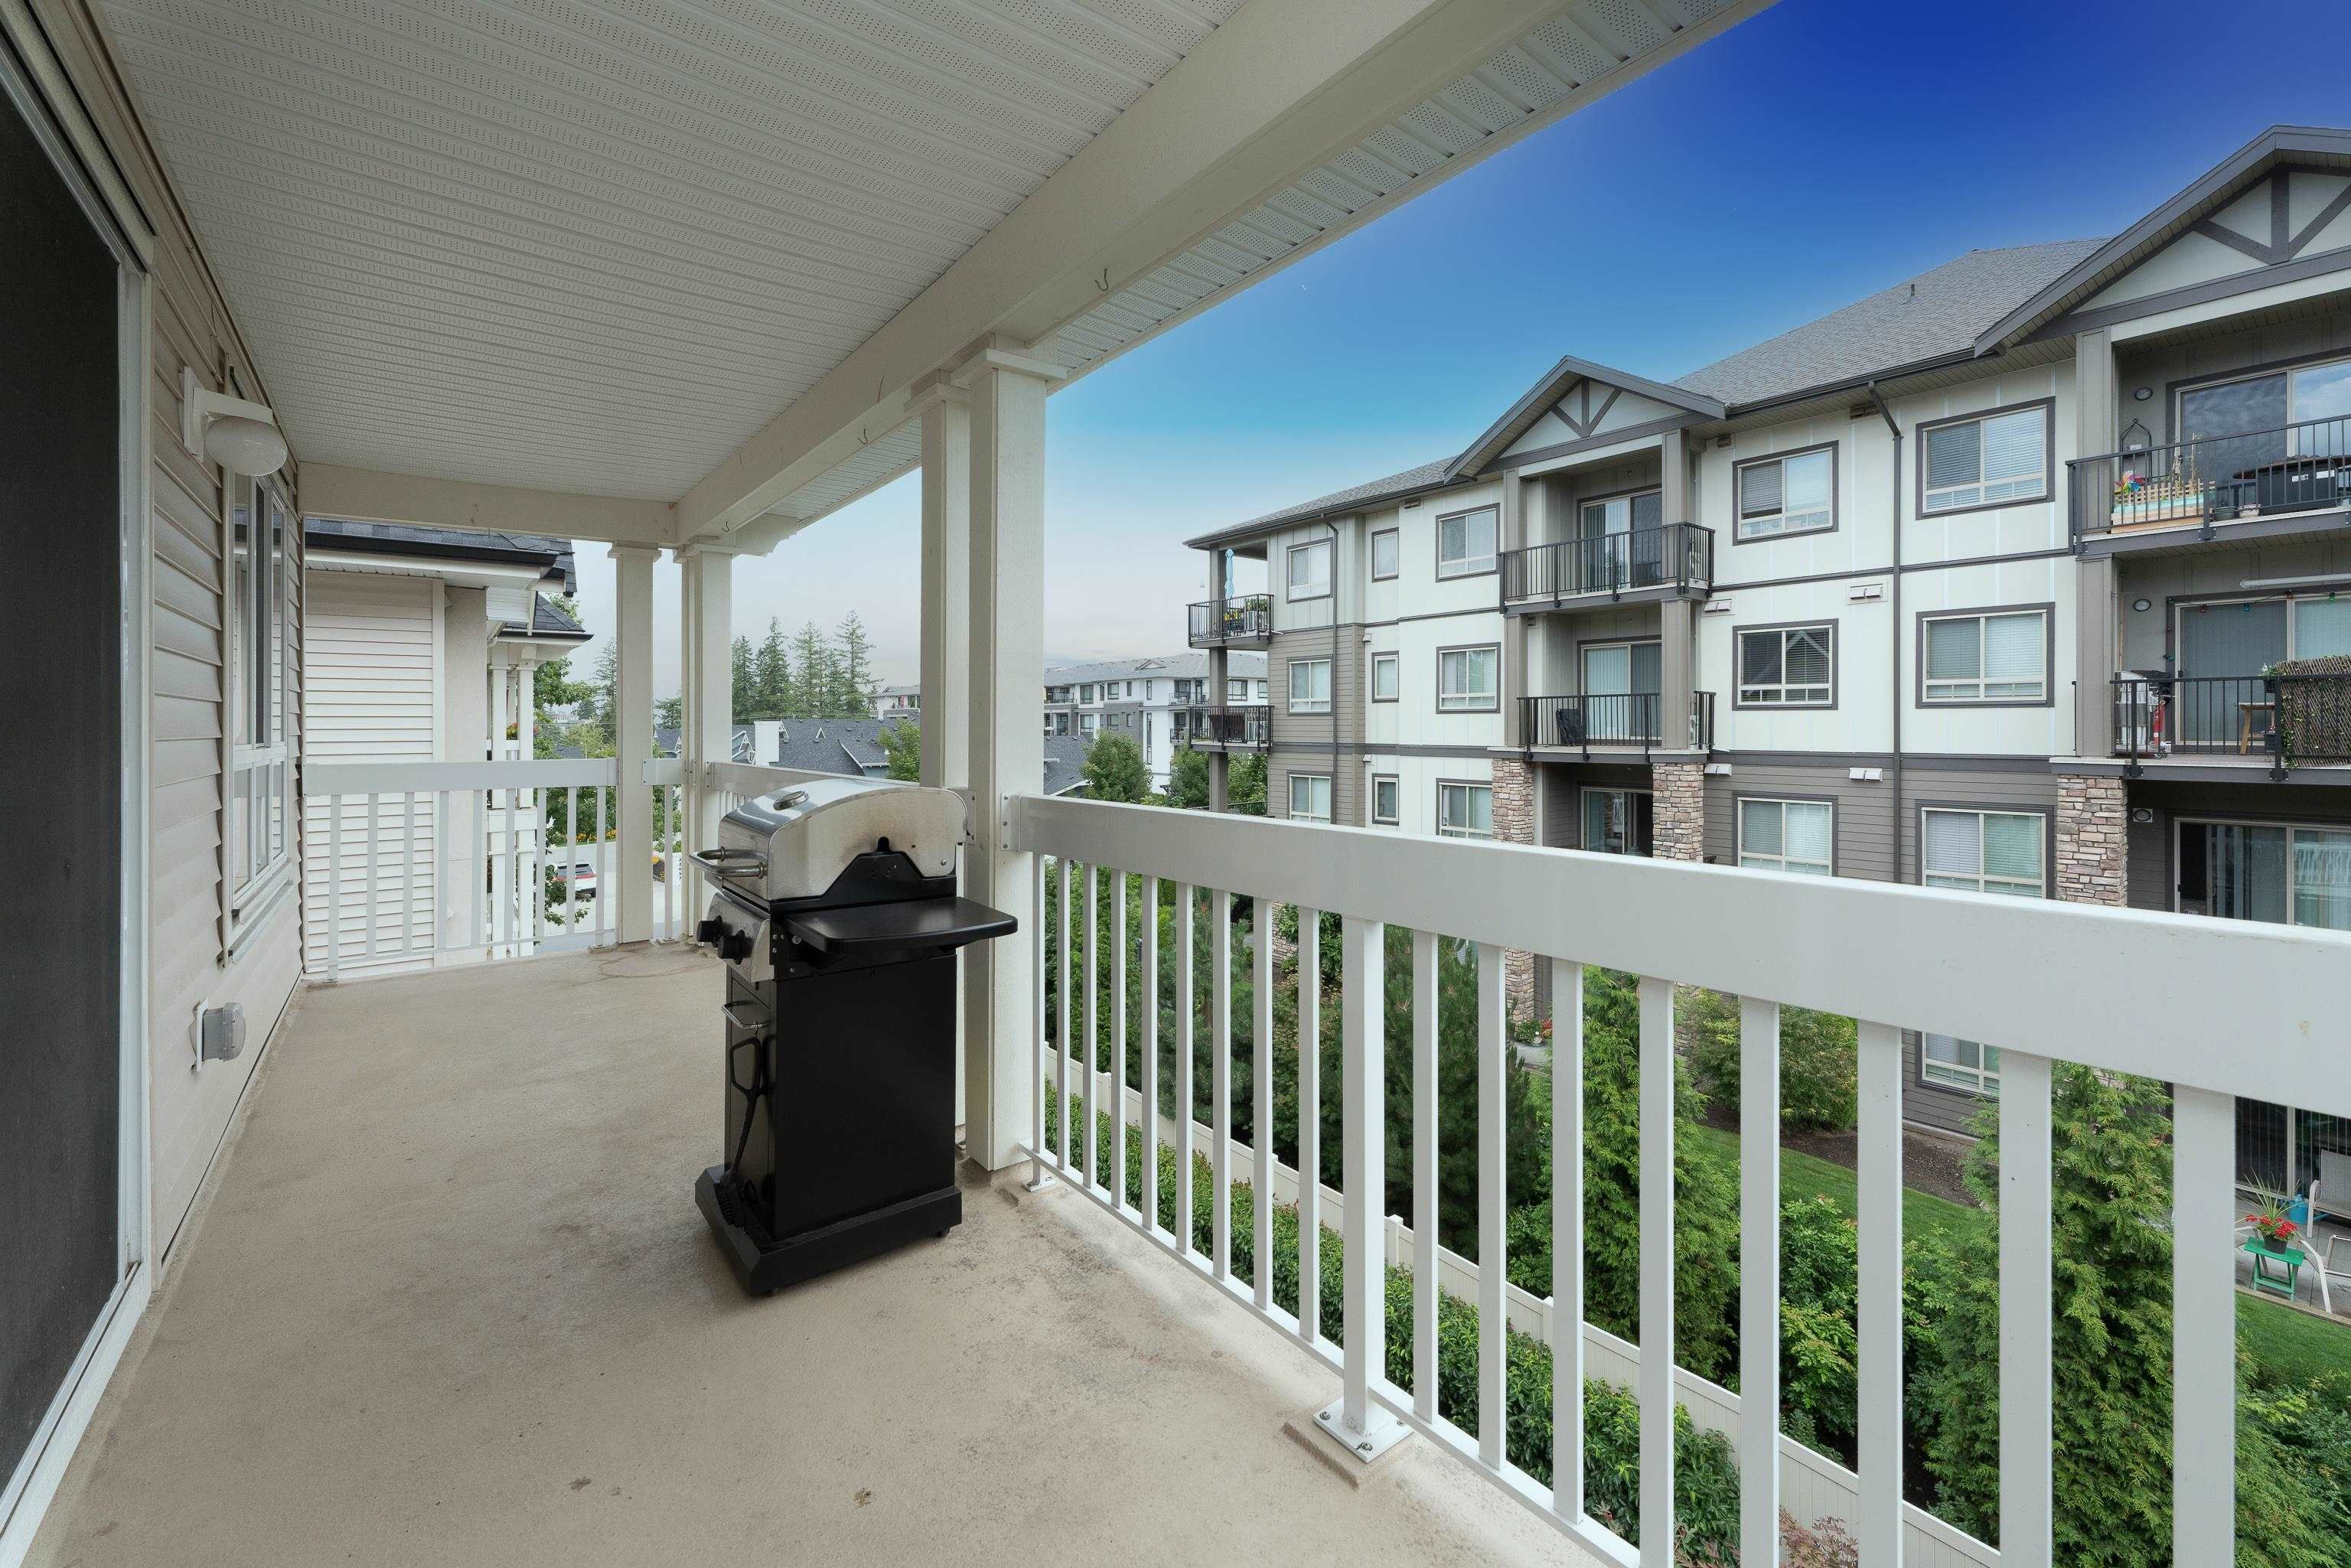 """Photo 11: Photos: 407 22022 49 Avenue in Langley: Murrayville Condo for sale in """"Murray Green"""" : MLS®# R2613823"""